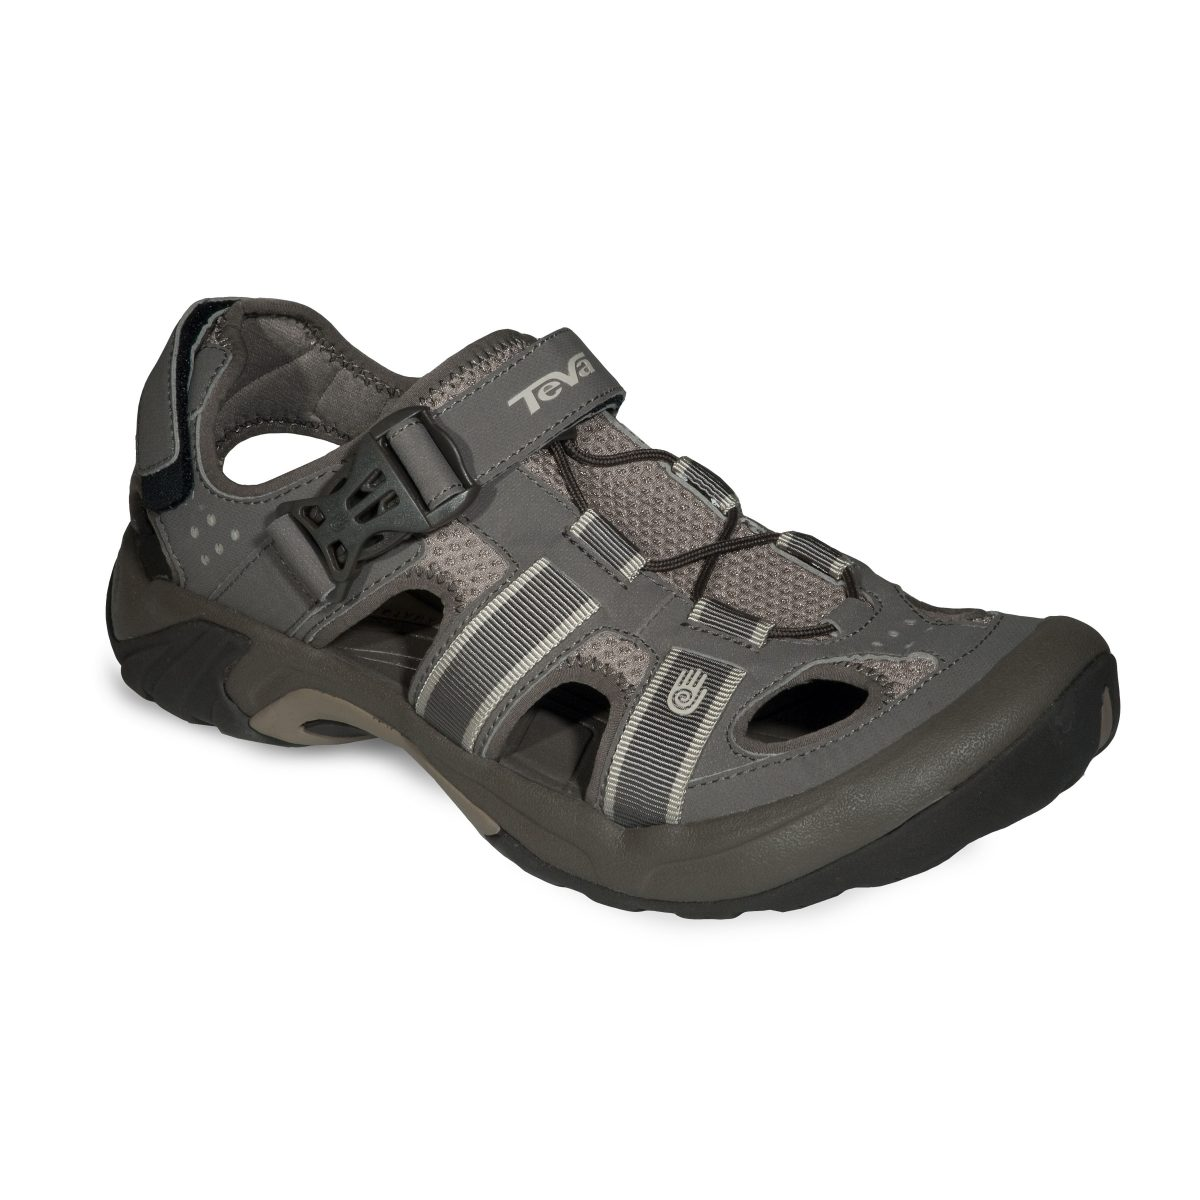 Teva Omnium Closed Toe Water Shoes For Men, Water Shoes